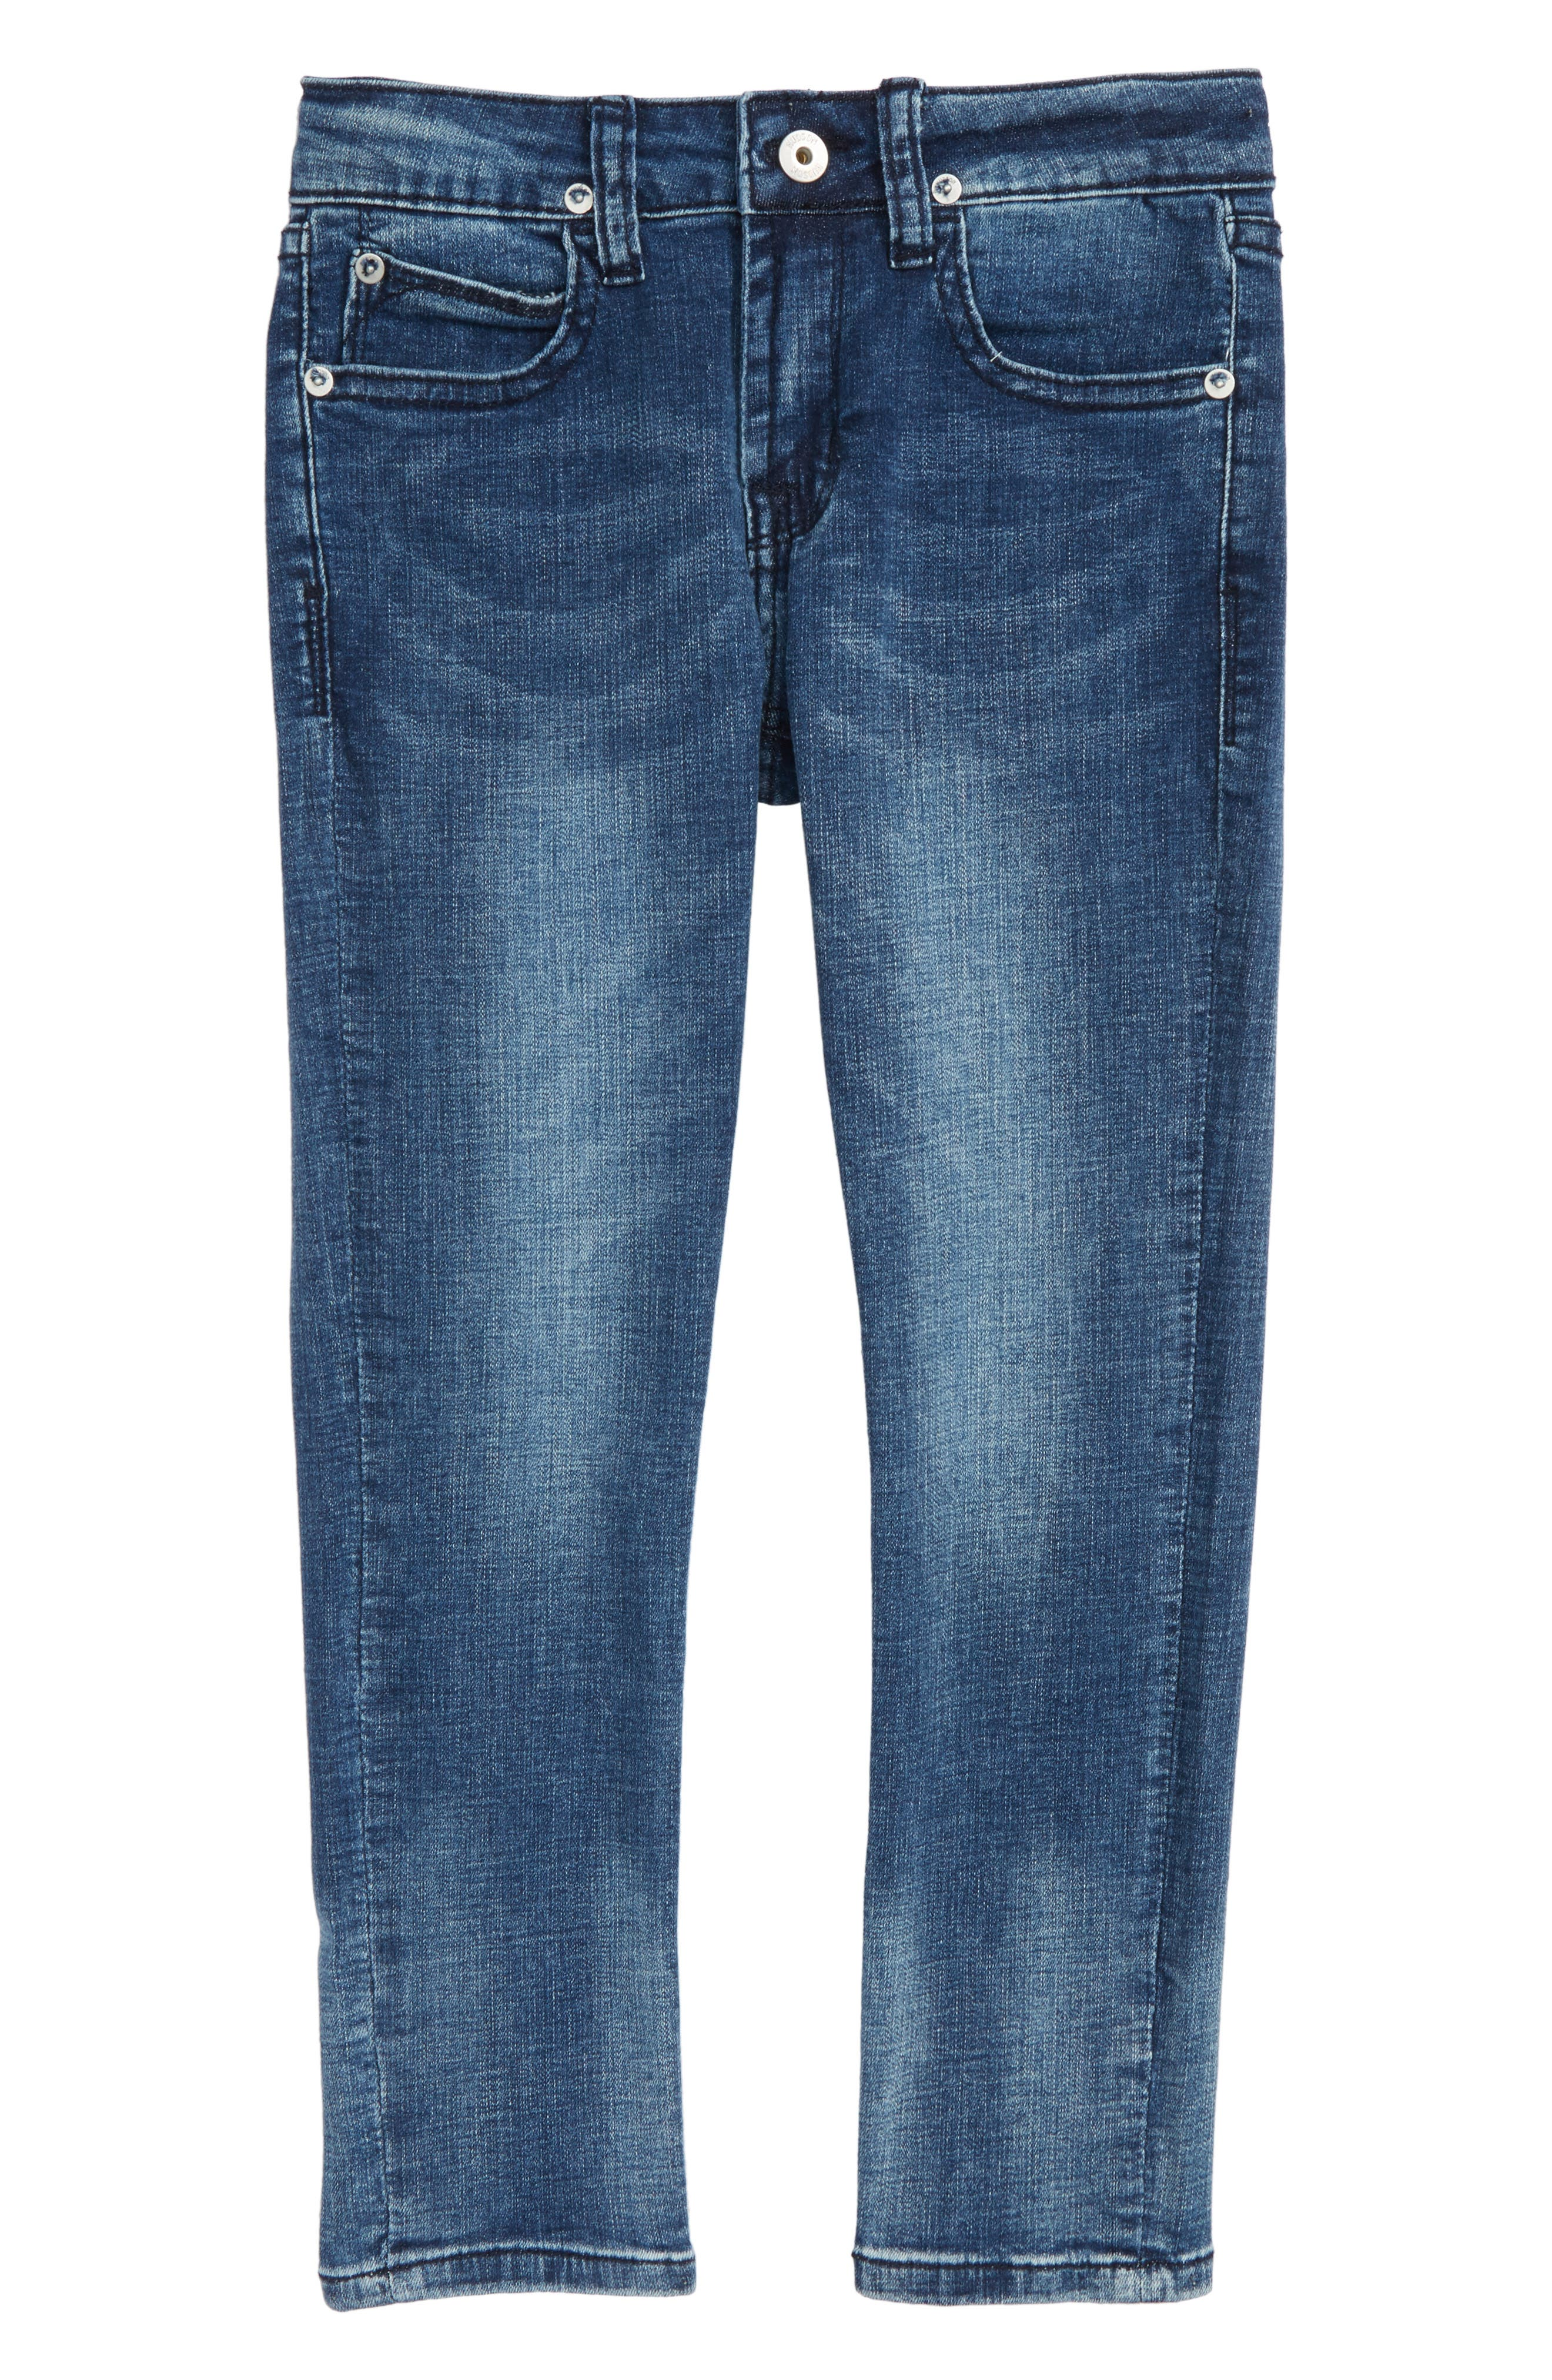 Hudson Kids Jagger Slim Fit Straight Leg Jeans (Toddler Boys & Little Boys)